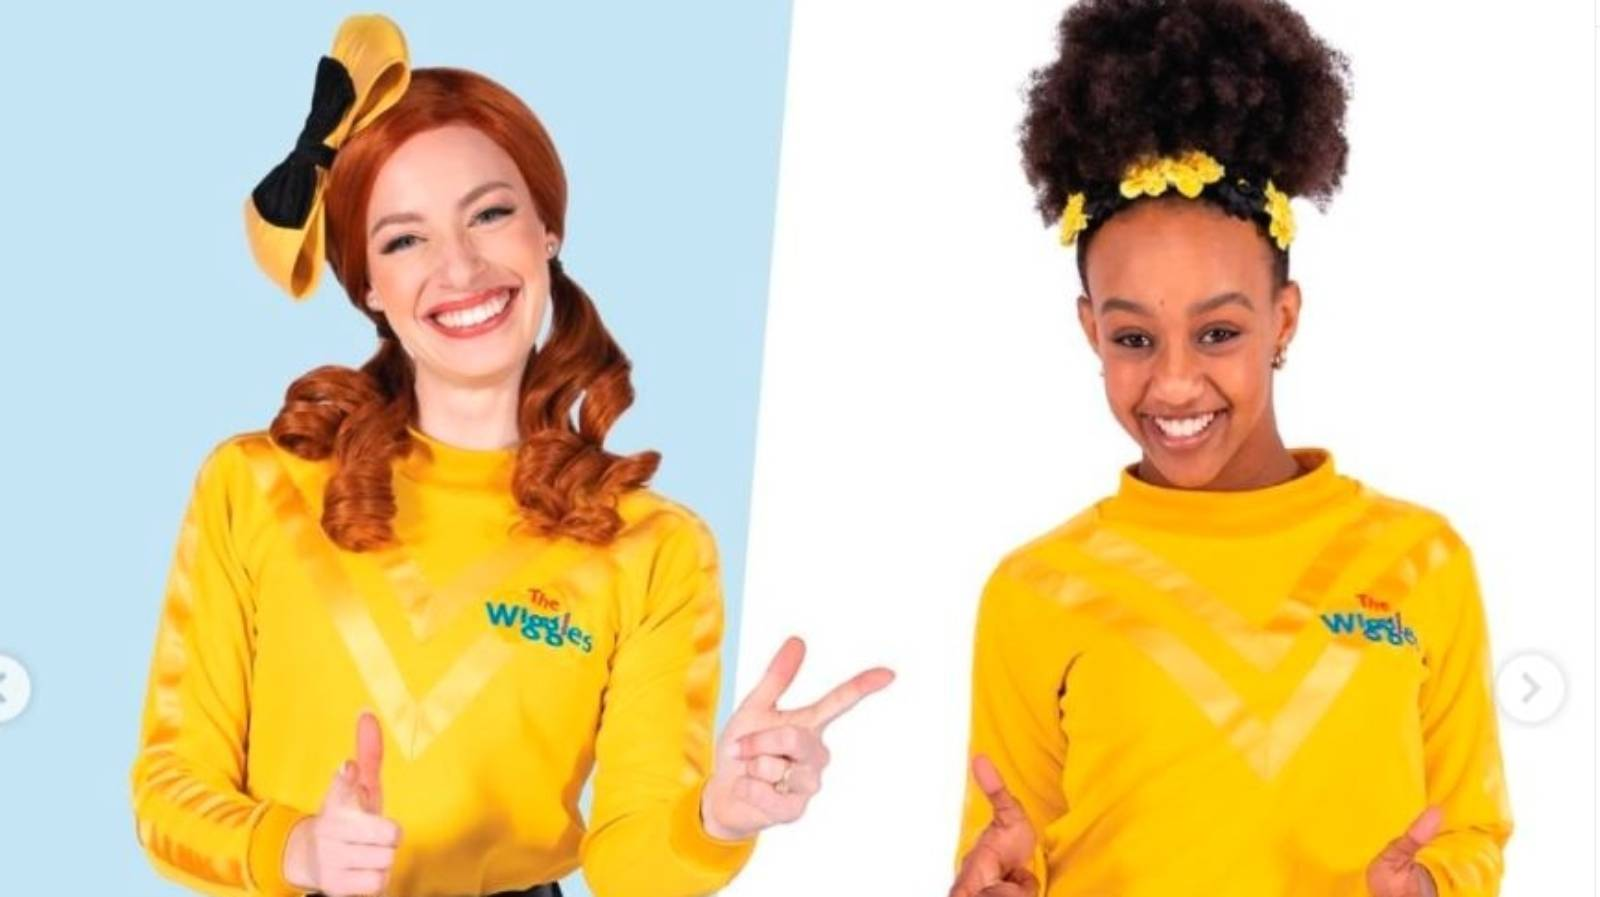 Meet the teenager who's the new Yellow Wiggle